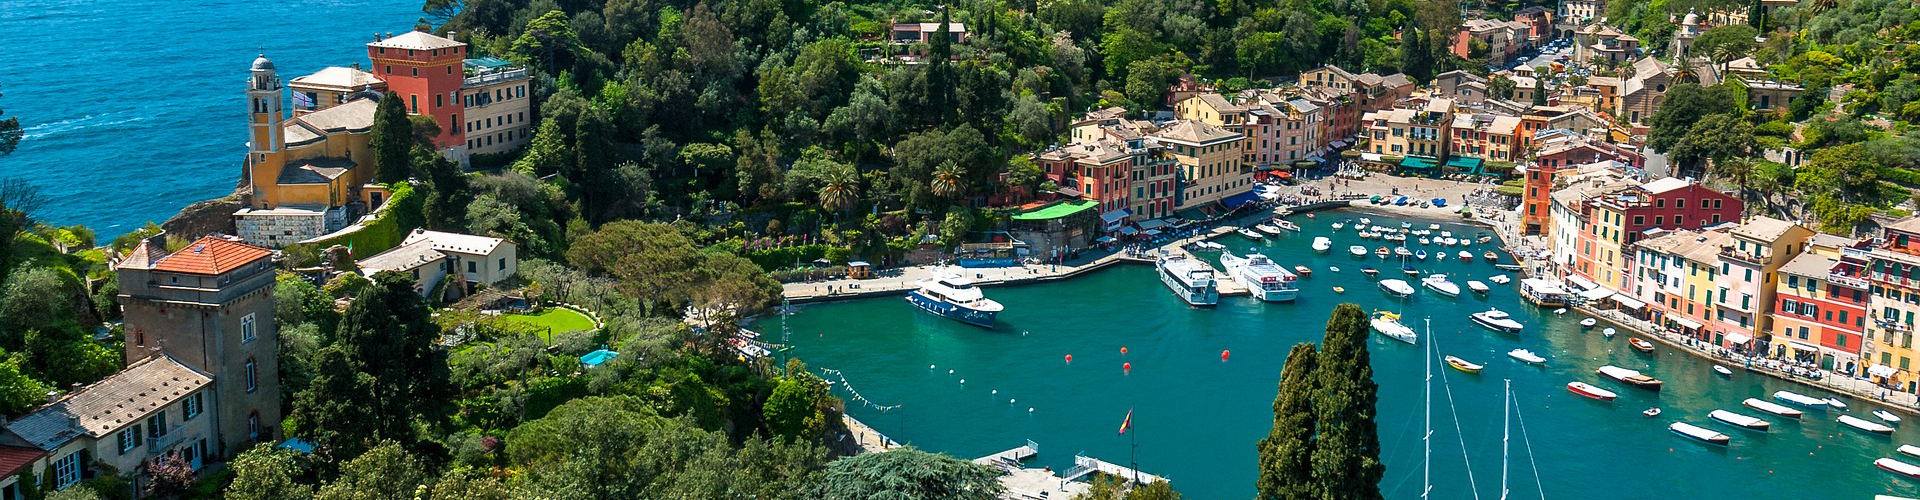 portofino-bethel-tour-vacations